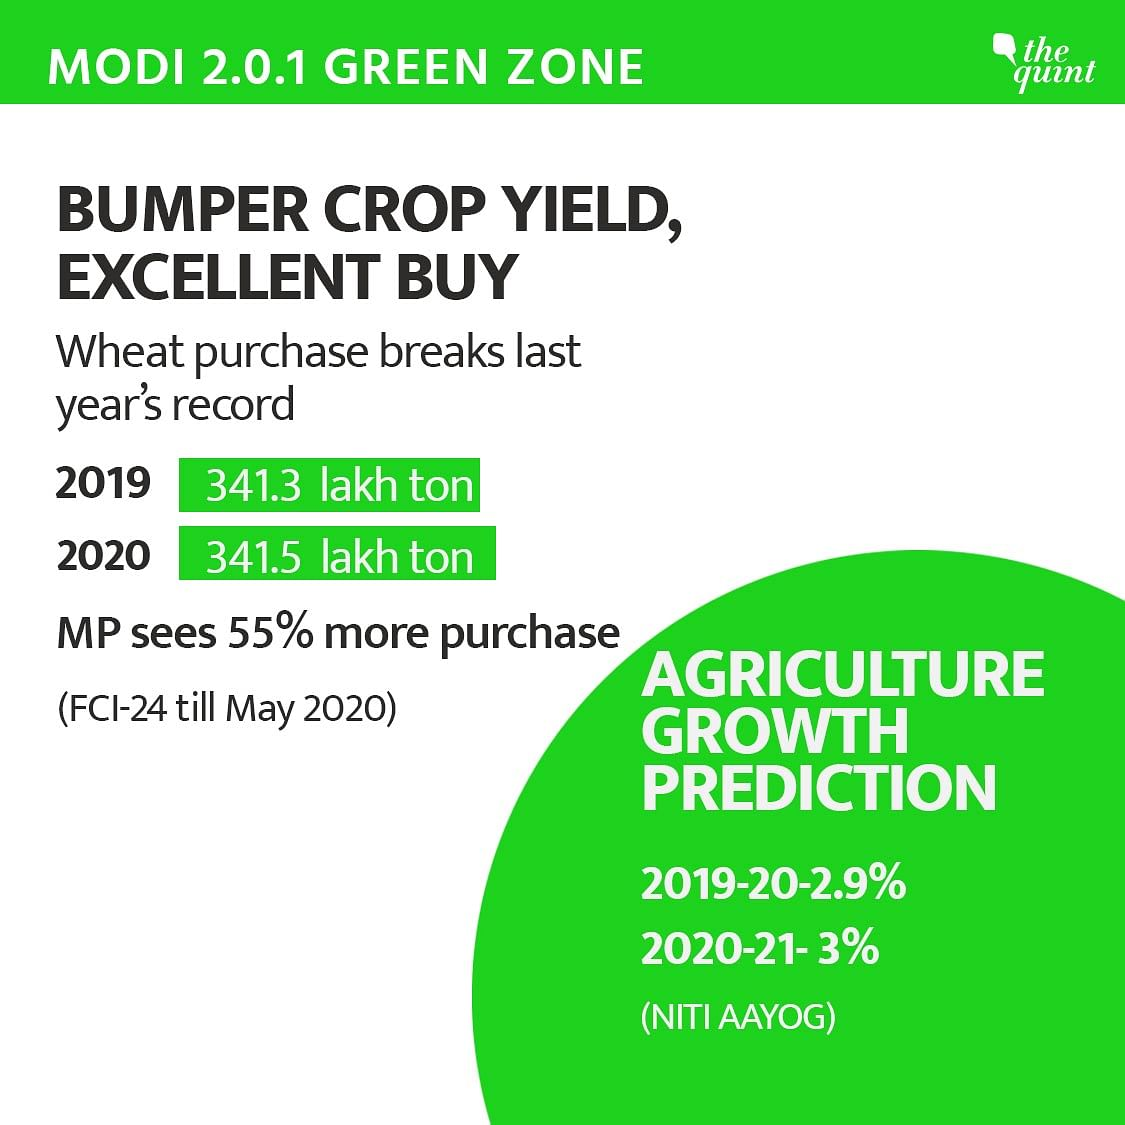 A good year for agriculture sector.